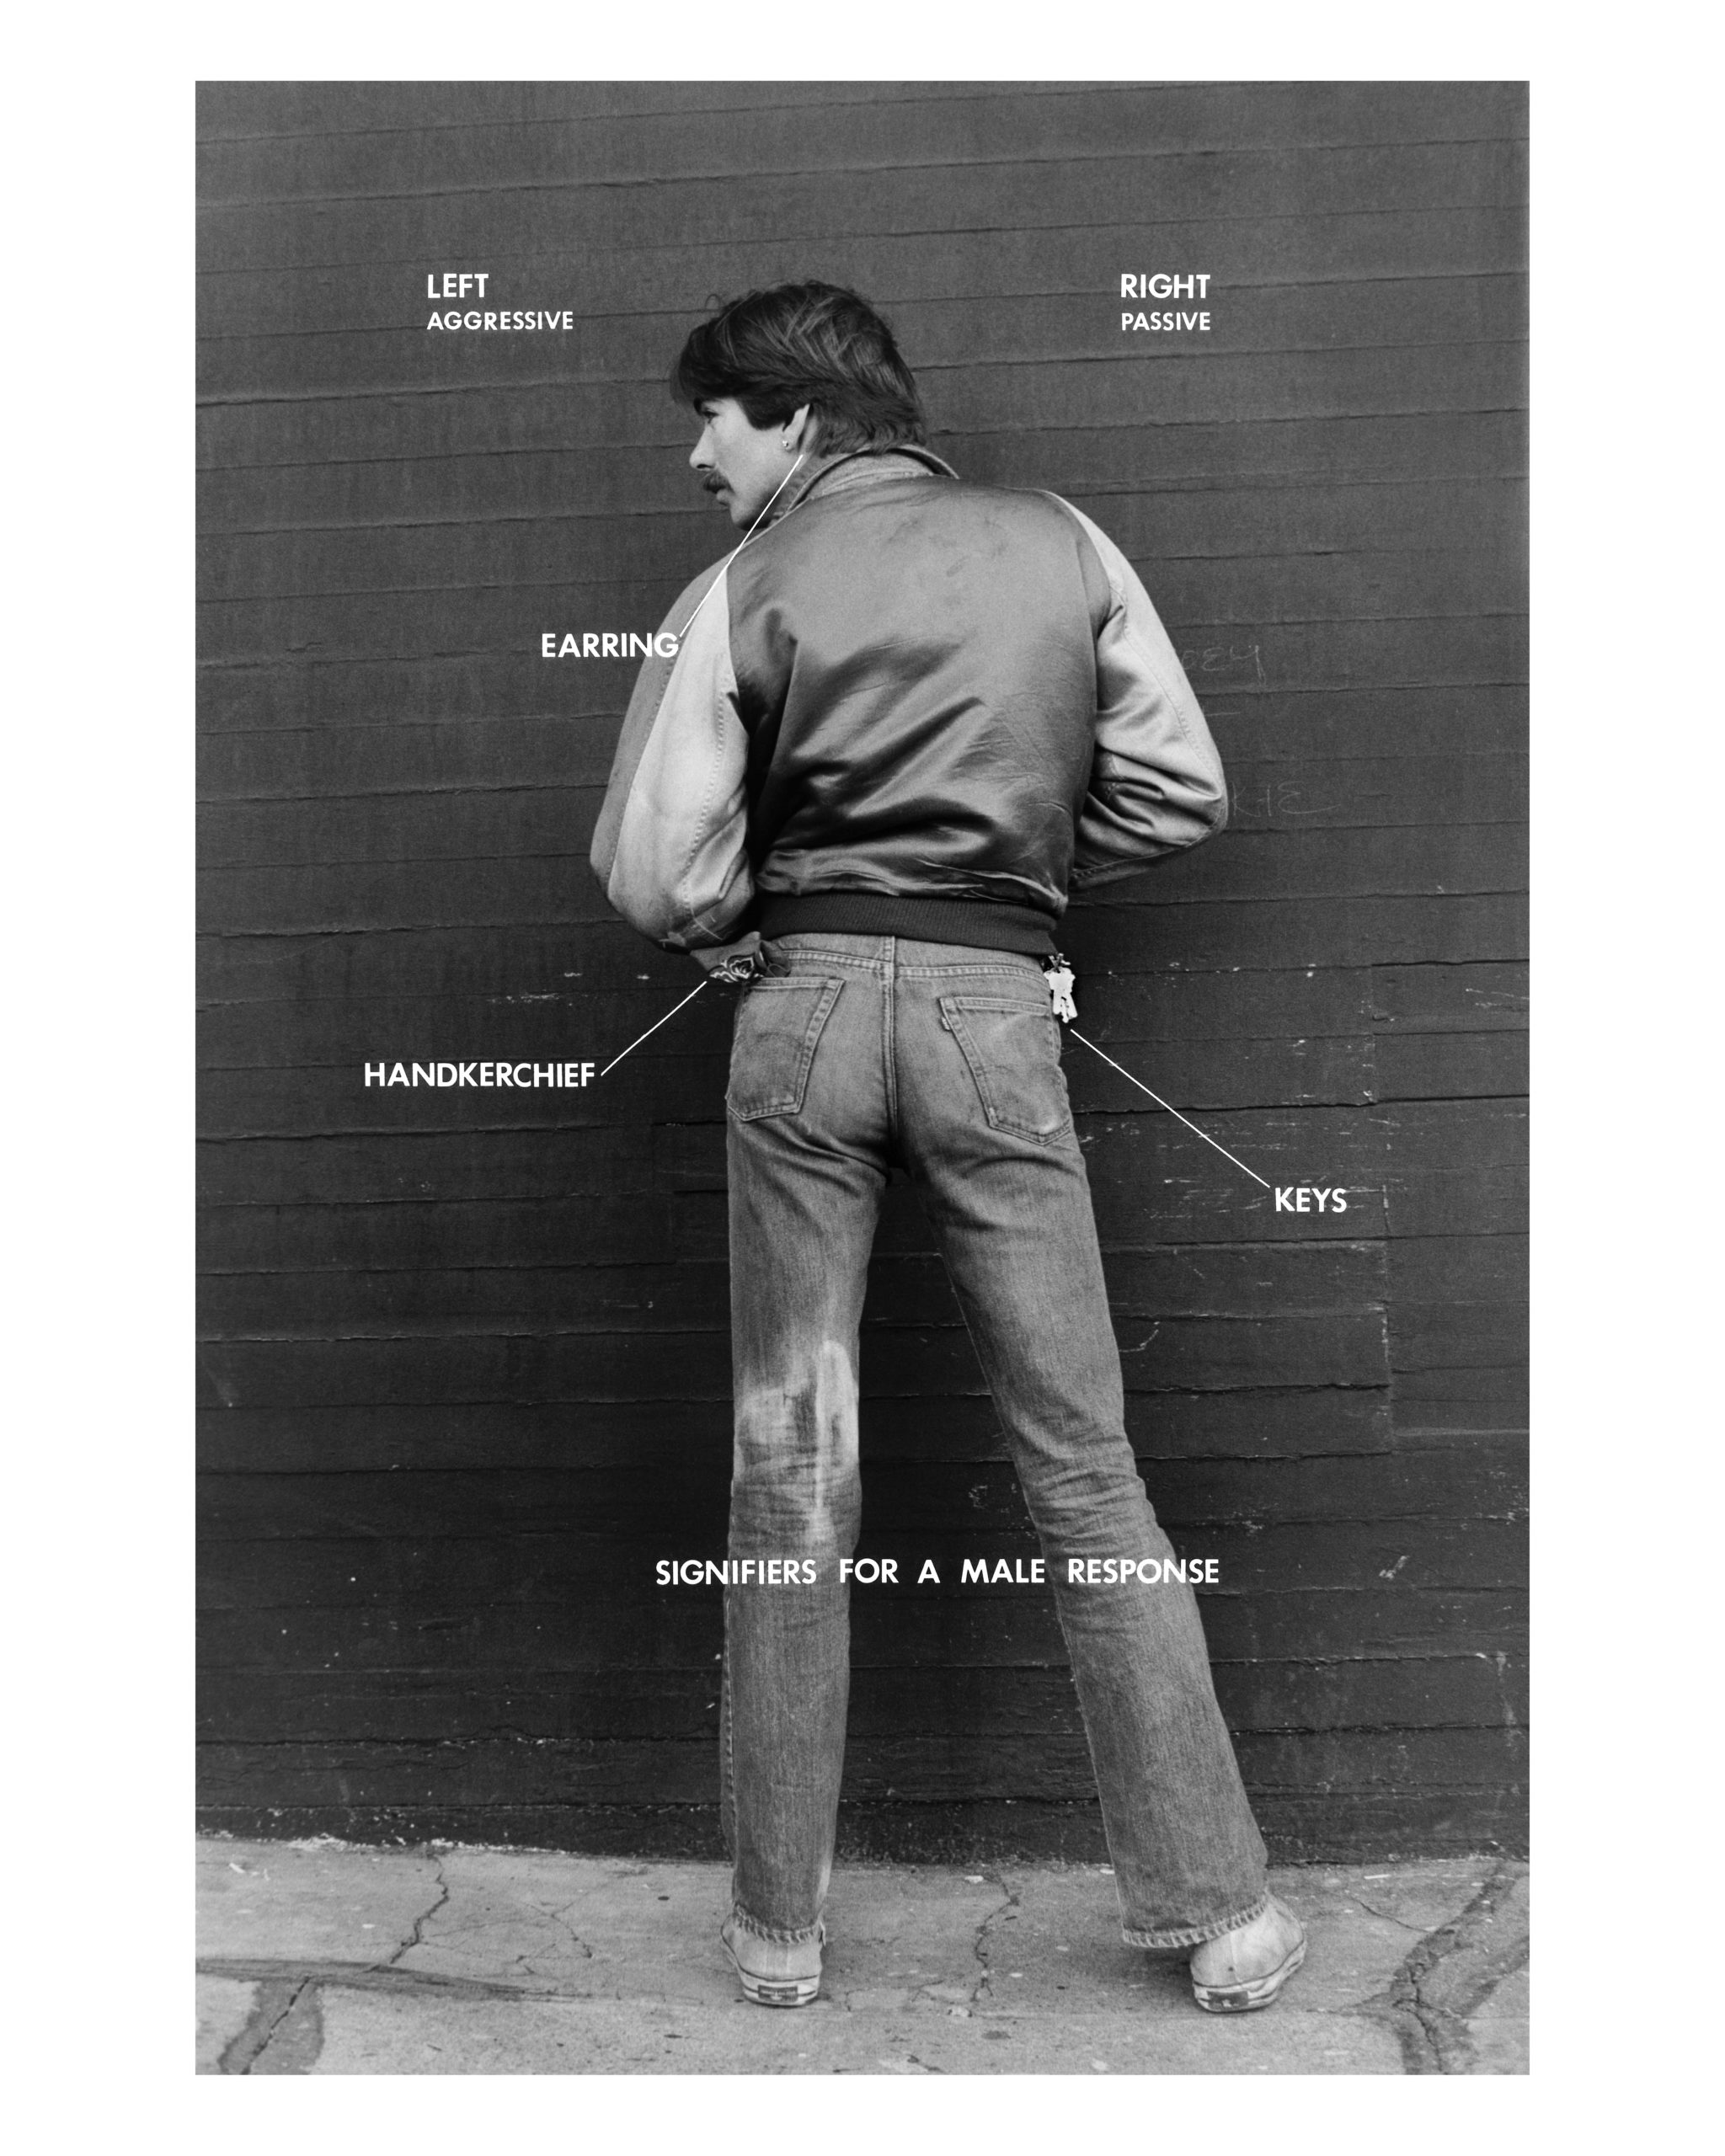 Hal Fischer, Signifiers for a Male Response